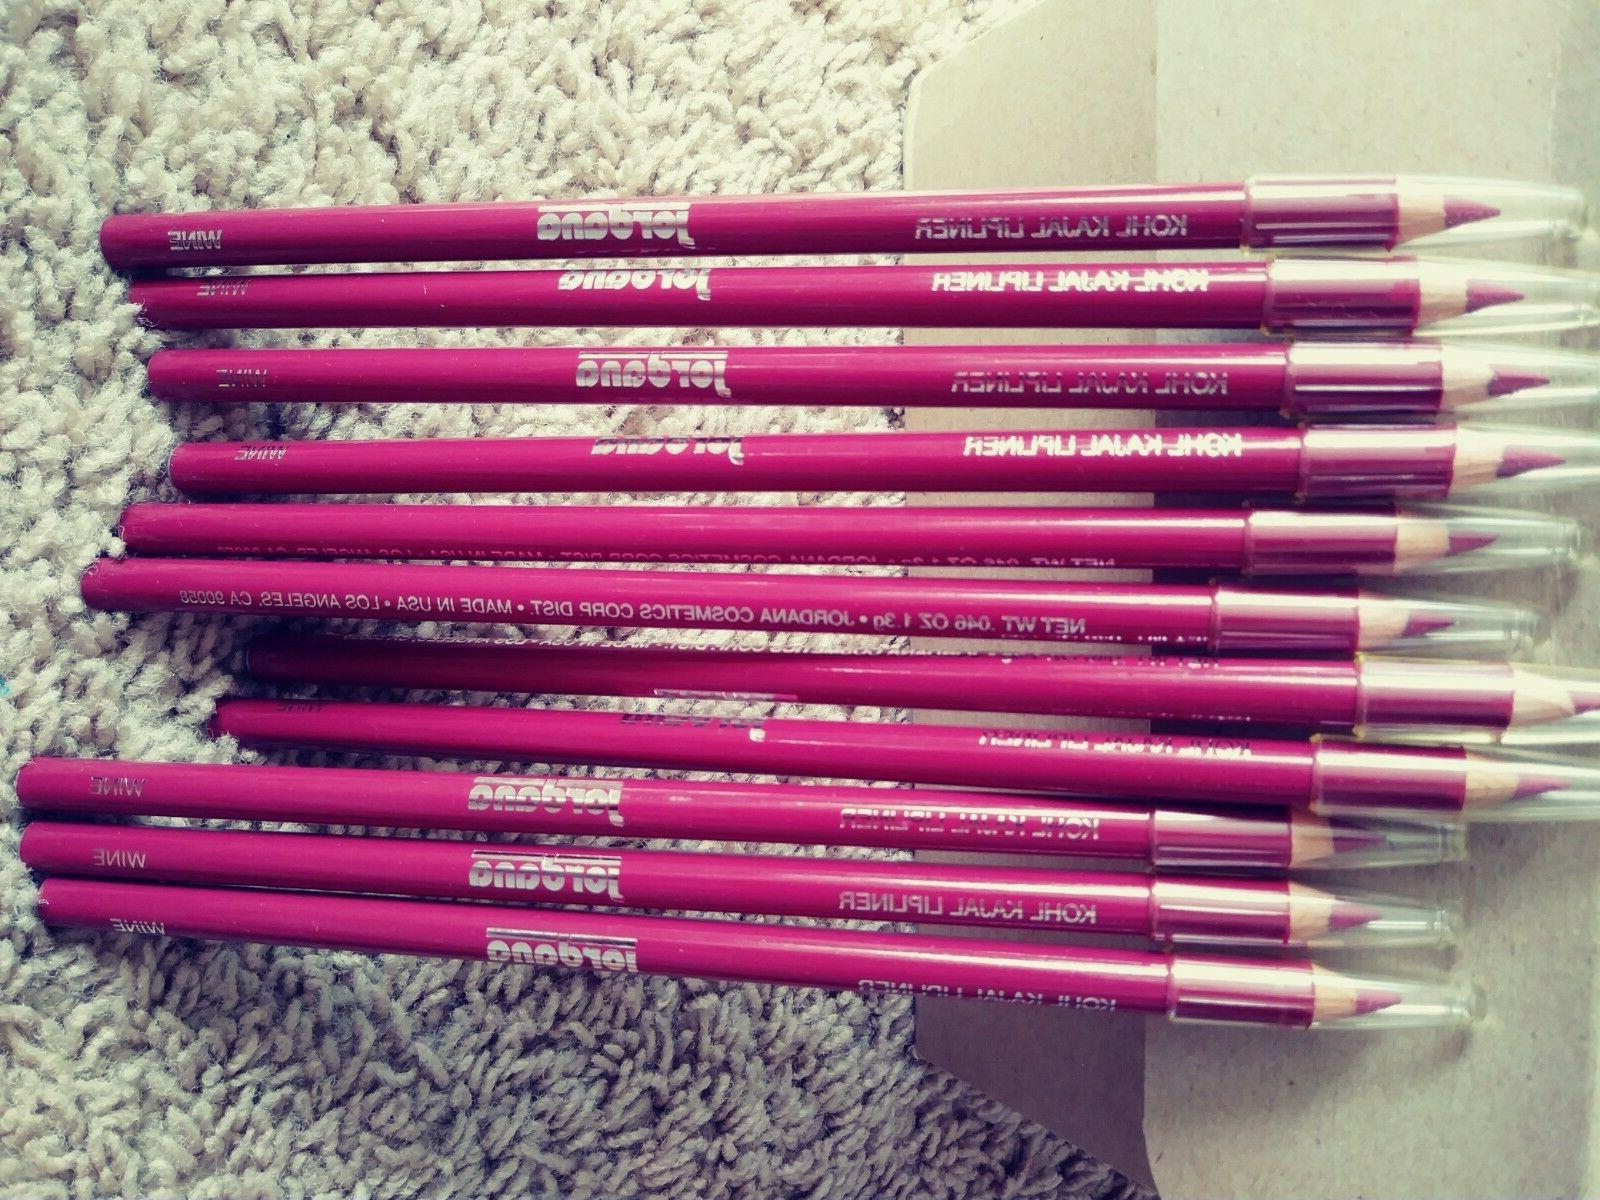 ~*~Set of 12 Mac lip liner pencil NEW~*~ Super sale !!!